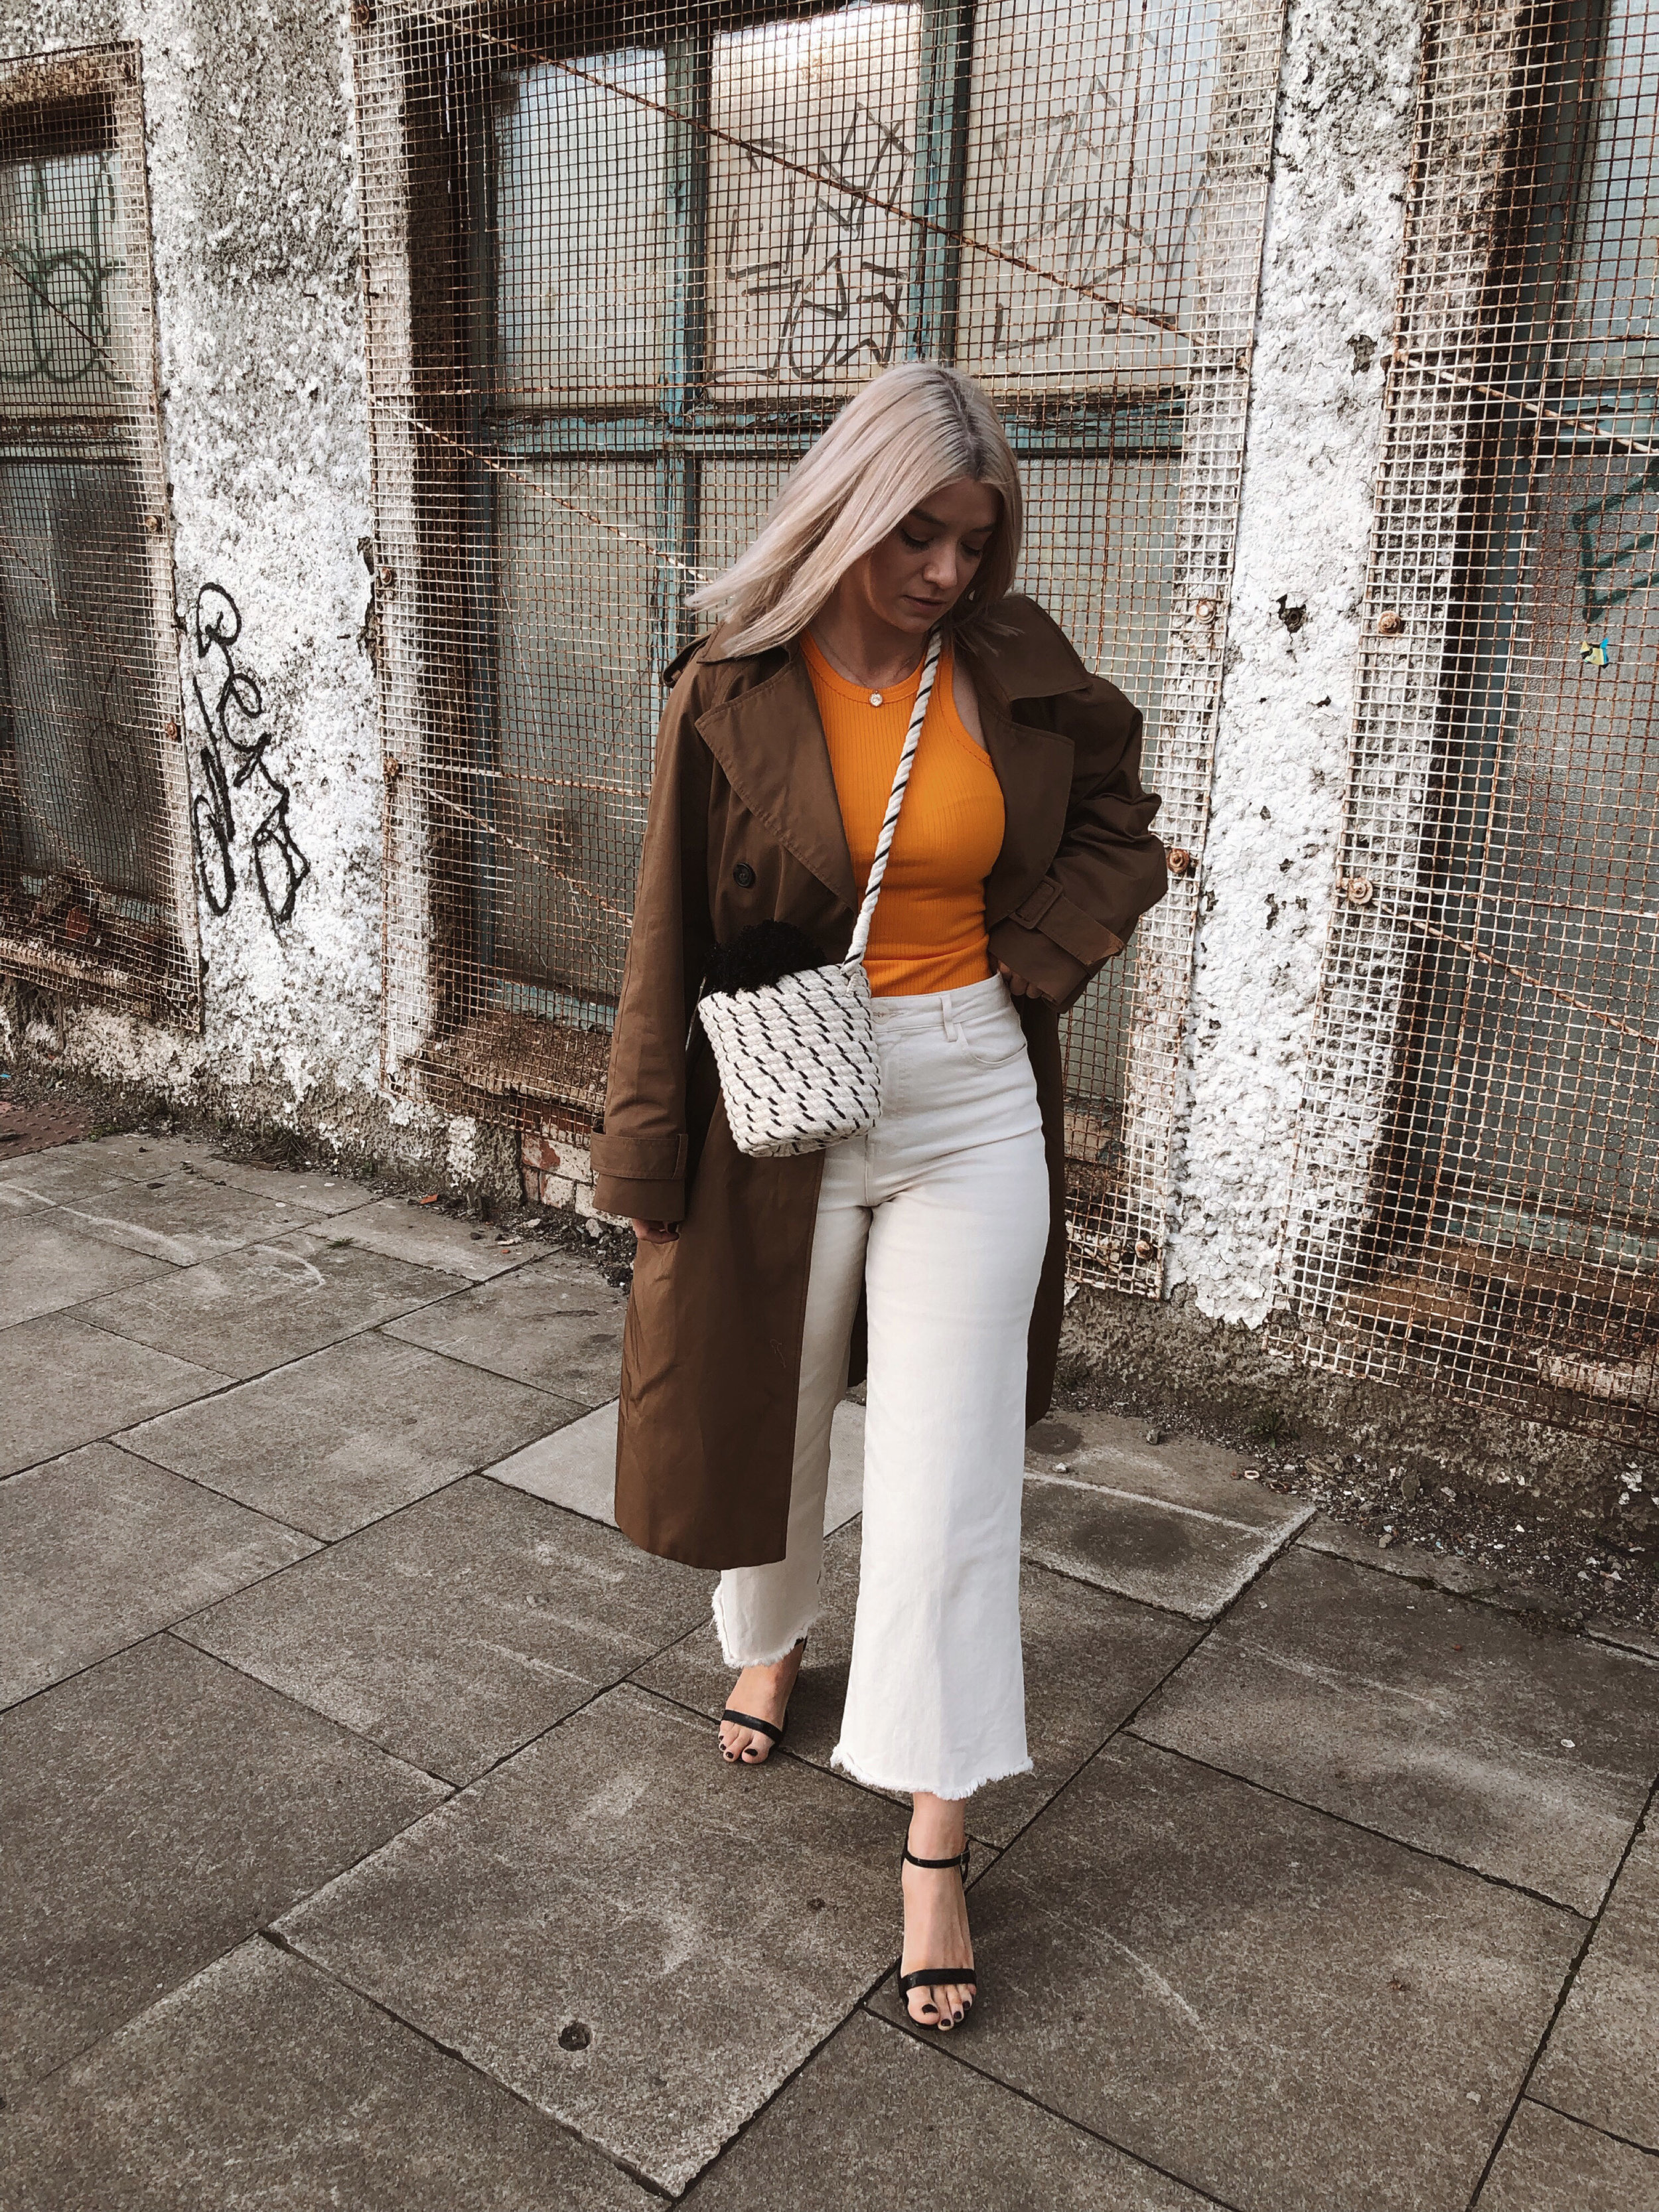 h&m studio collection ss19, cream jeans, orange tank top, ribbed tank top, trench coat, black heels, joey taylor, northern magpie 5